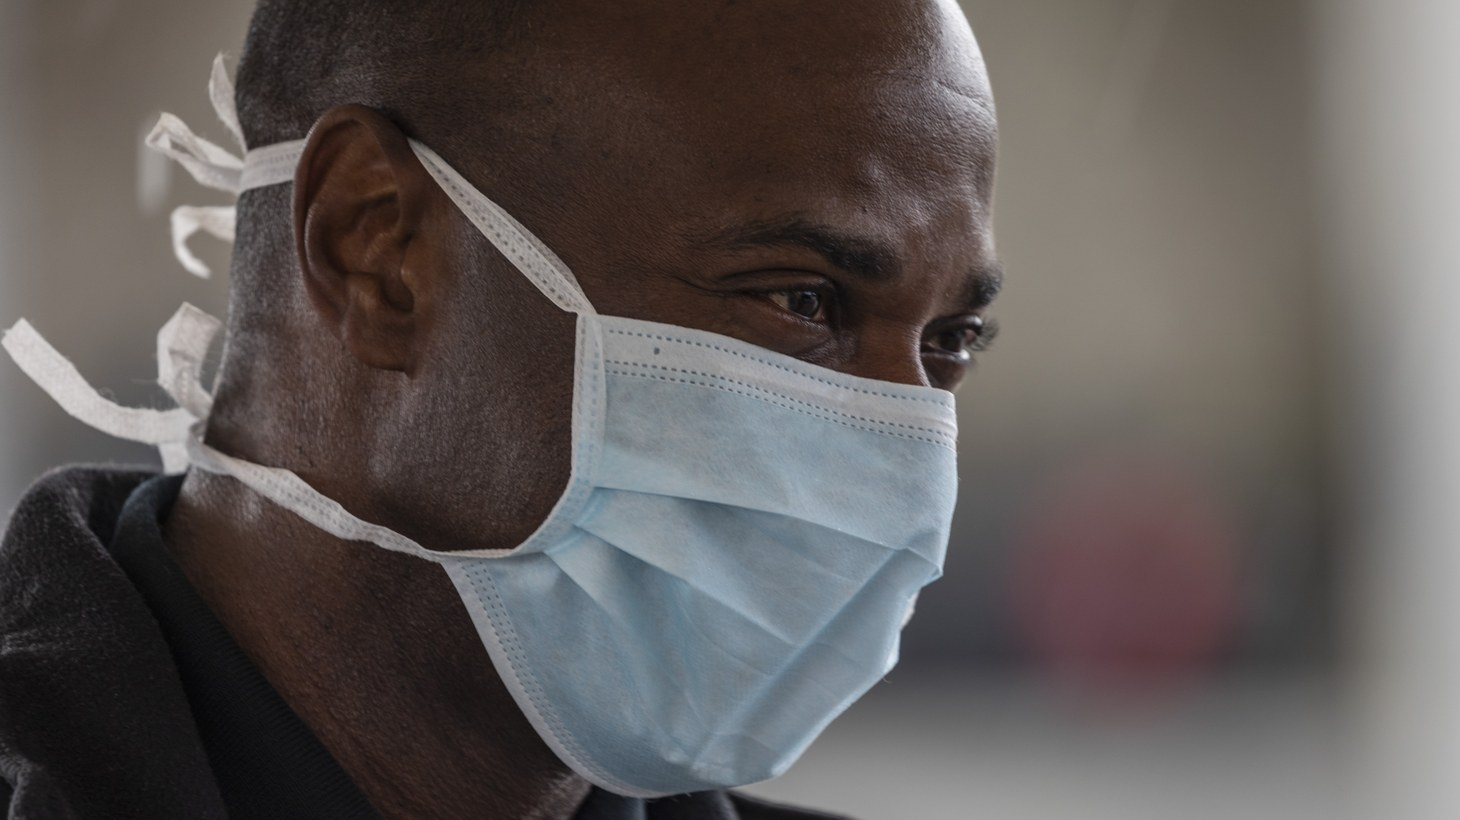 A man wearing a medical mask at a South LA COVID-19 testing site. April 8, 2020.